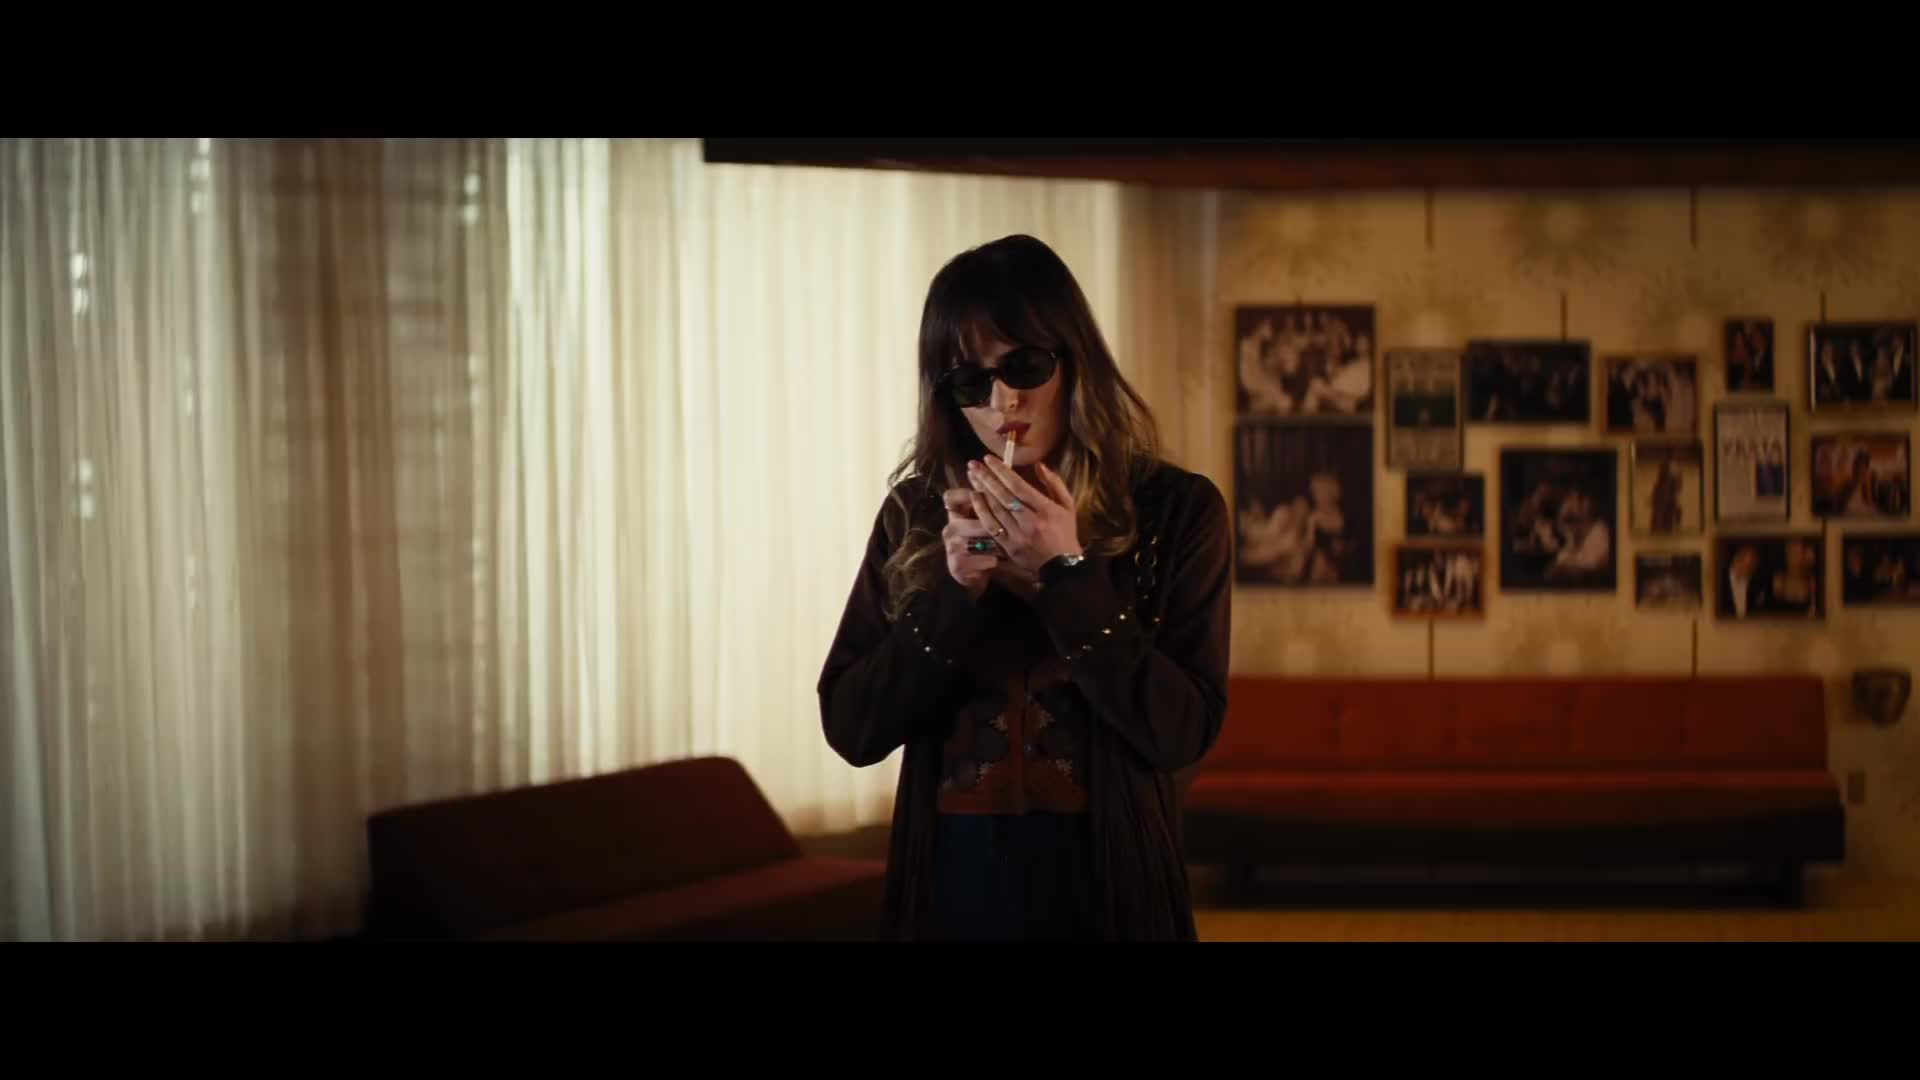 Taking A Smoke Break Gif By Bad Times At The El Royale Gfycat